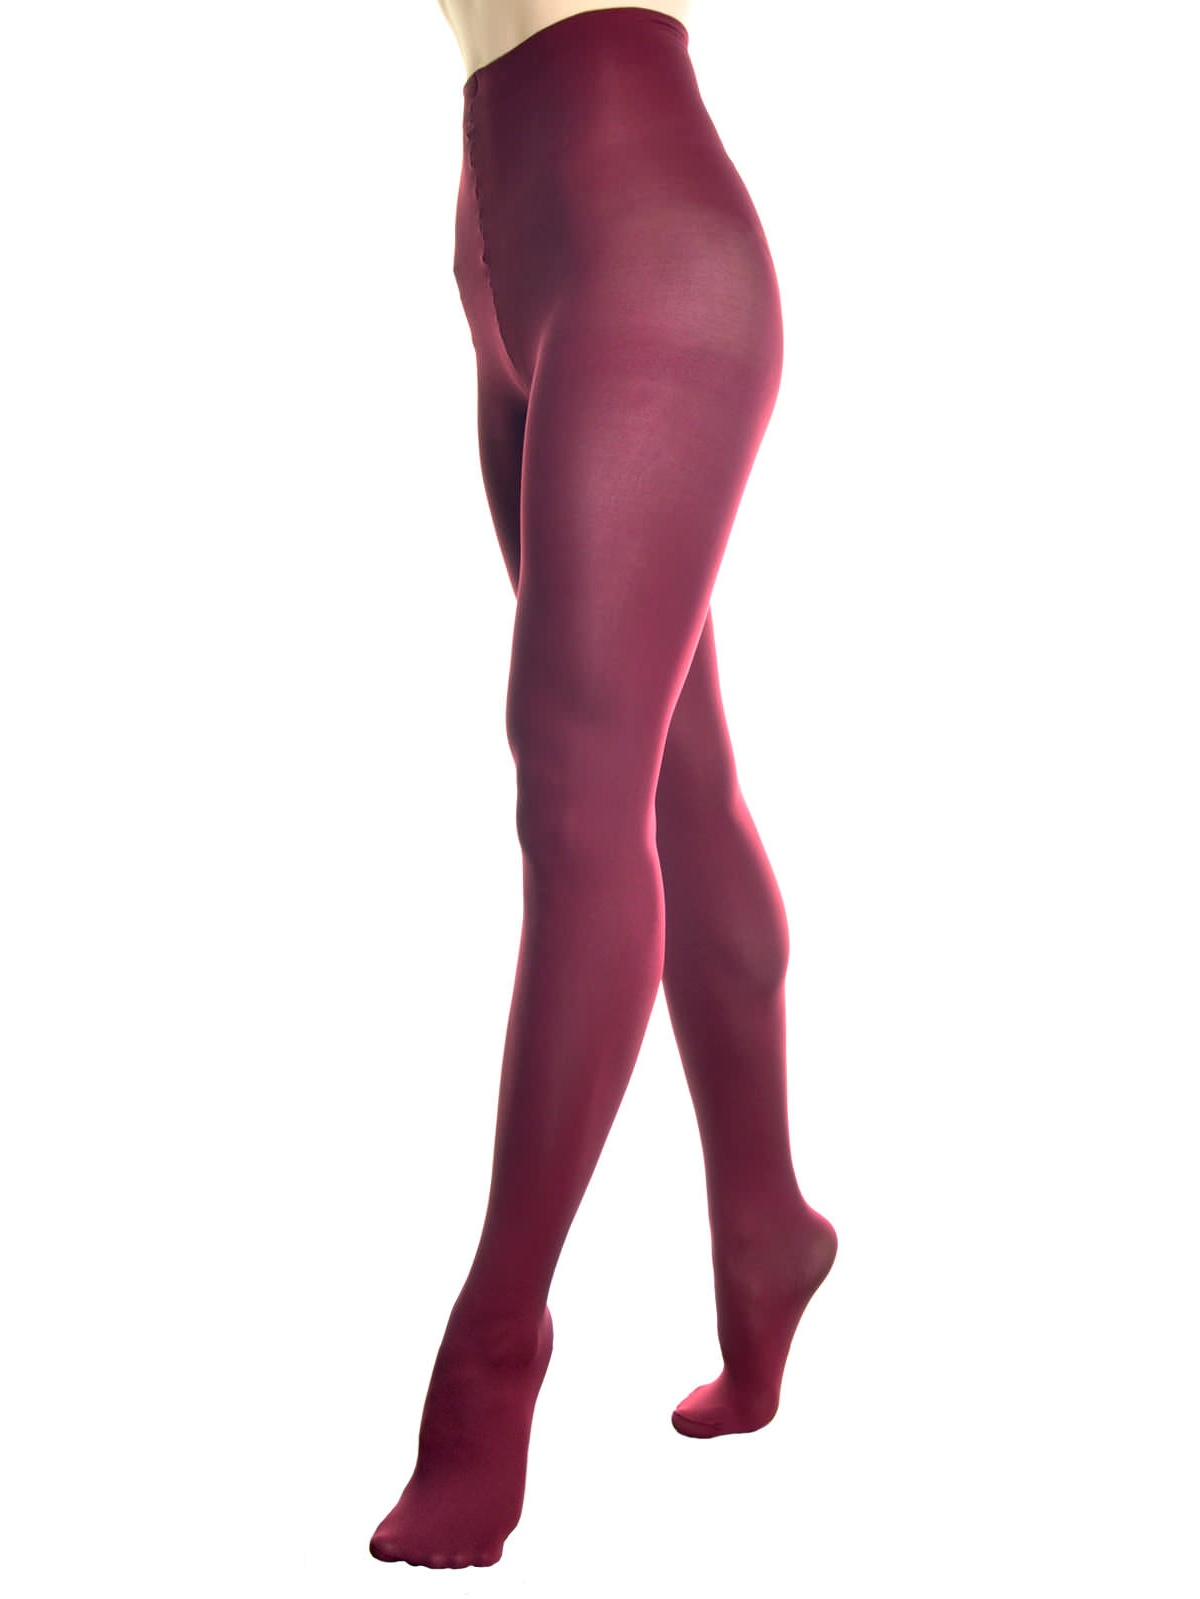 Angelina 70D Opaque Tights (1-Pack)